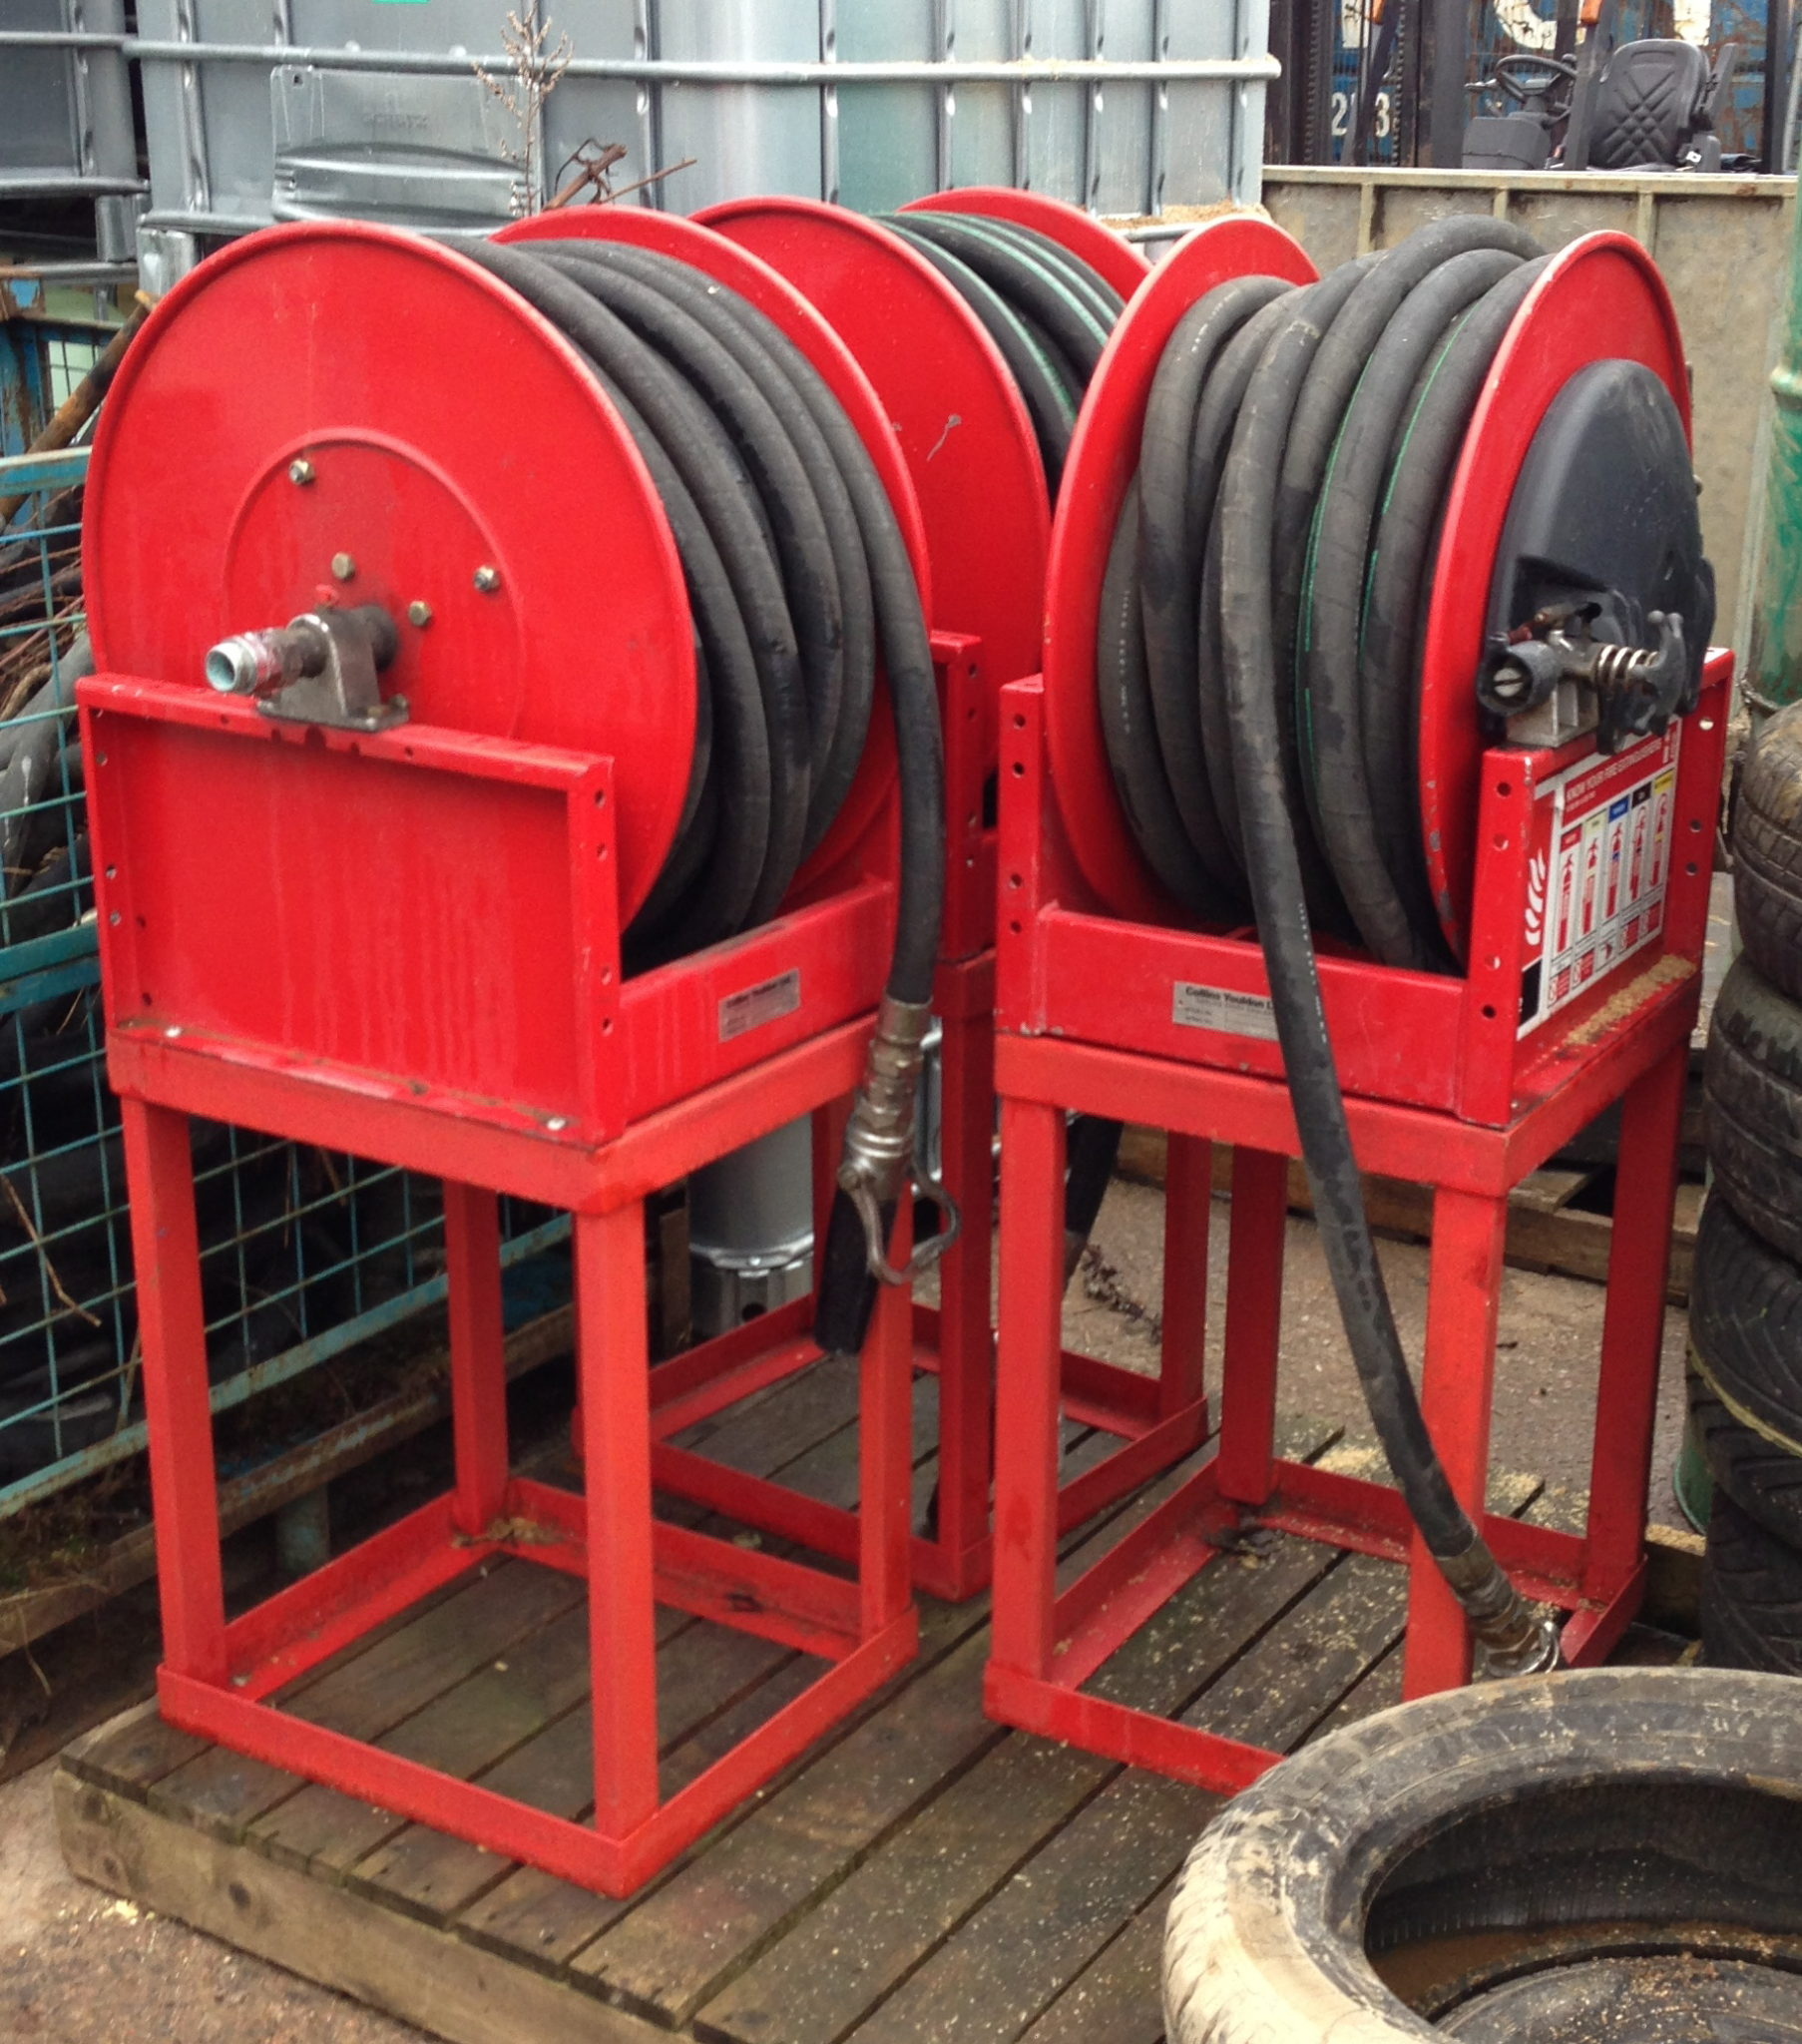 Fire Hose Reels 5 Available - Fire Hose Reels